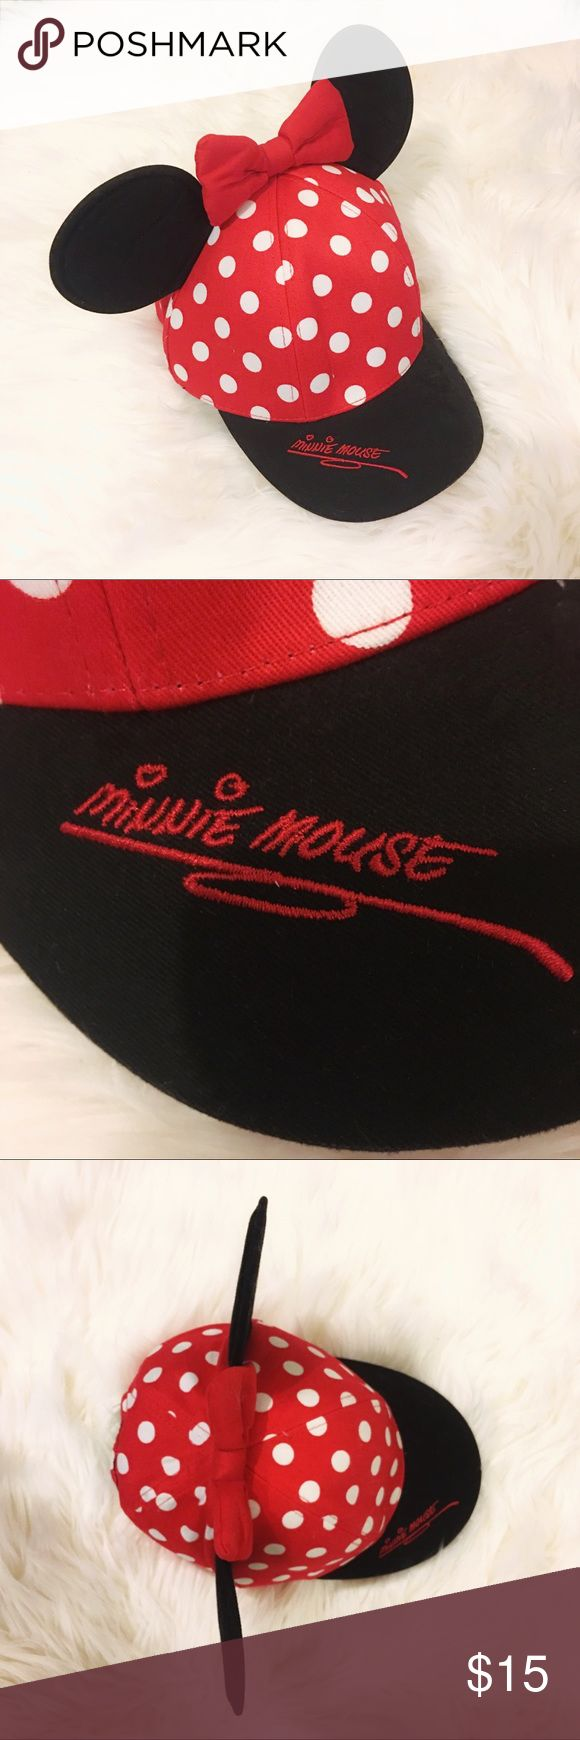 """NWT Mickey Mouse cap hat, Size Teen New with tag! Mickey Mouse ( well actually Minne Mouse, but you know what I mean) hat from Disney World. Adjustable on the back. Note: this hat is labeled as """"teen"""", you can see me wearing it in the last picture,  it's tight and too shallow for me since I'm an adult. ☝️But it may fit if your head circumference is smaller. That's why I'm selling it, a really cute hat which I wanted to keep tho.Time for a more suitable home Disney Accessories Hats"""